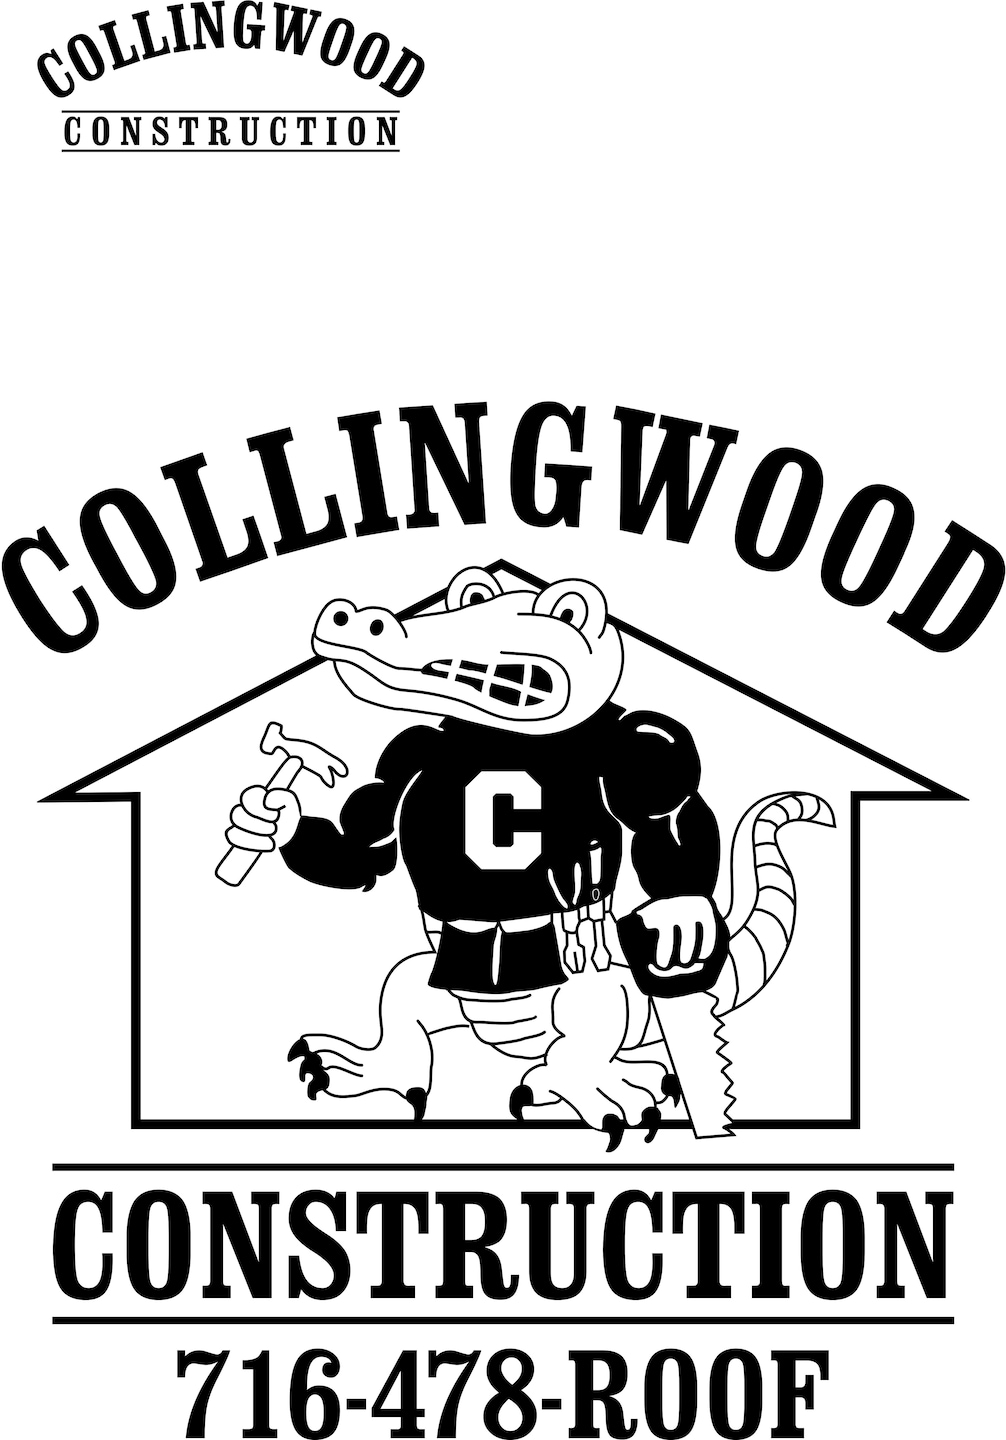 COLLINGWOOD CONSTRUCTION logo